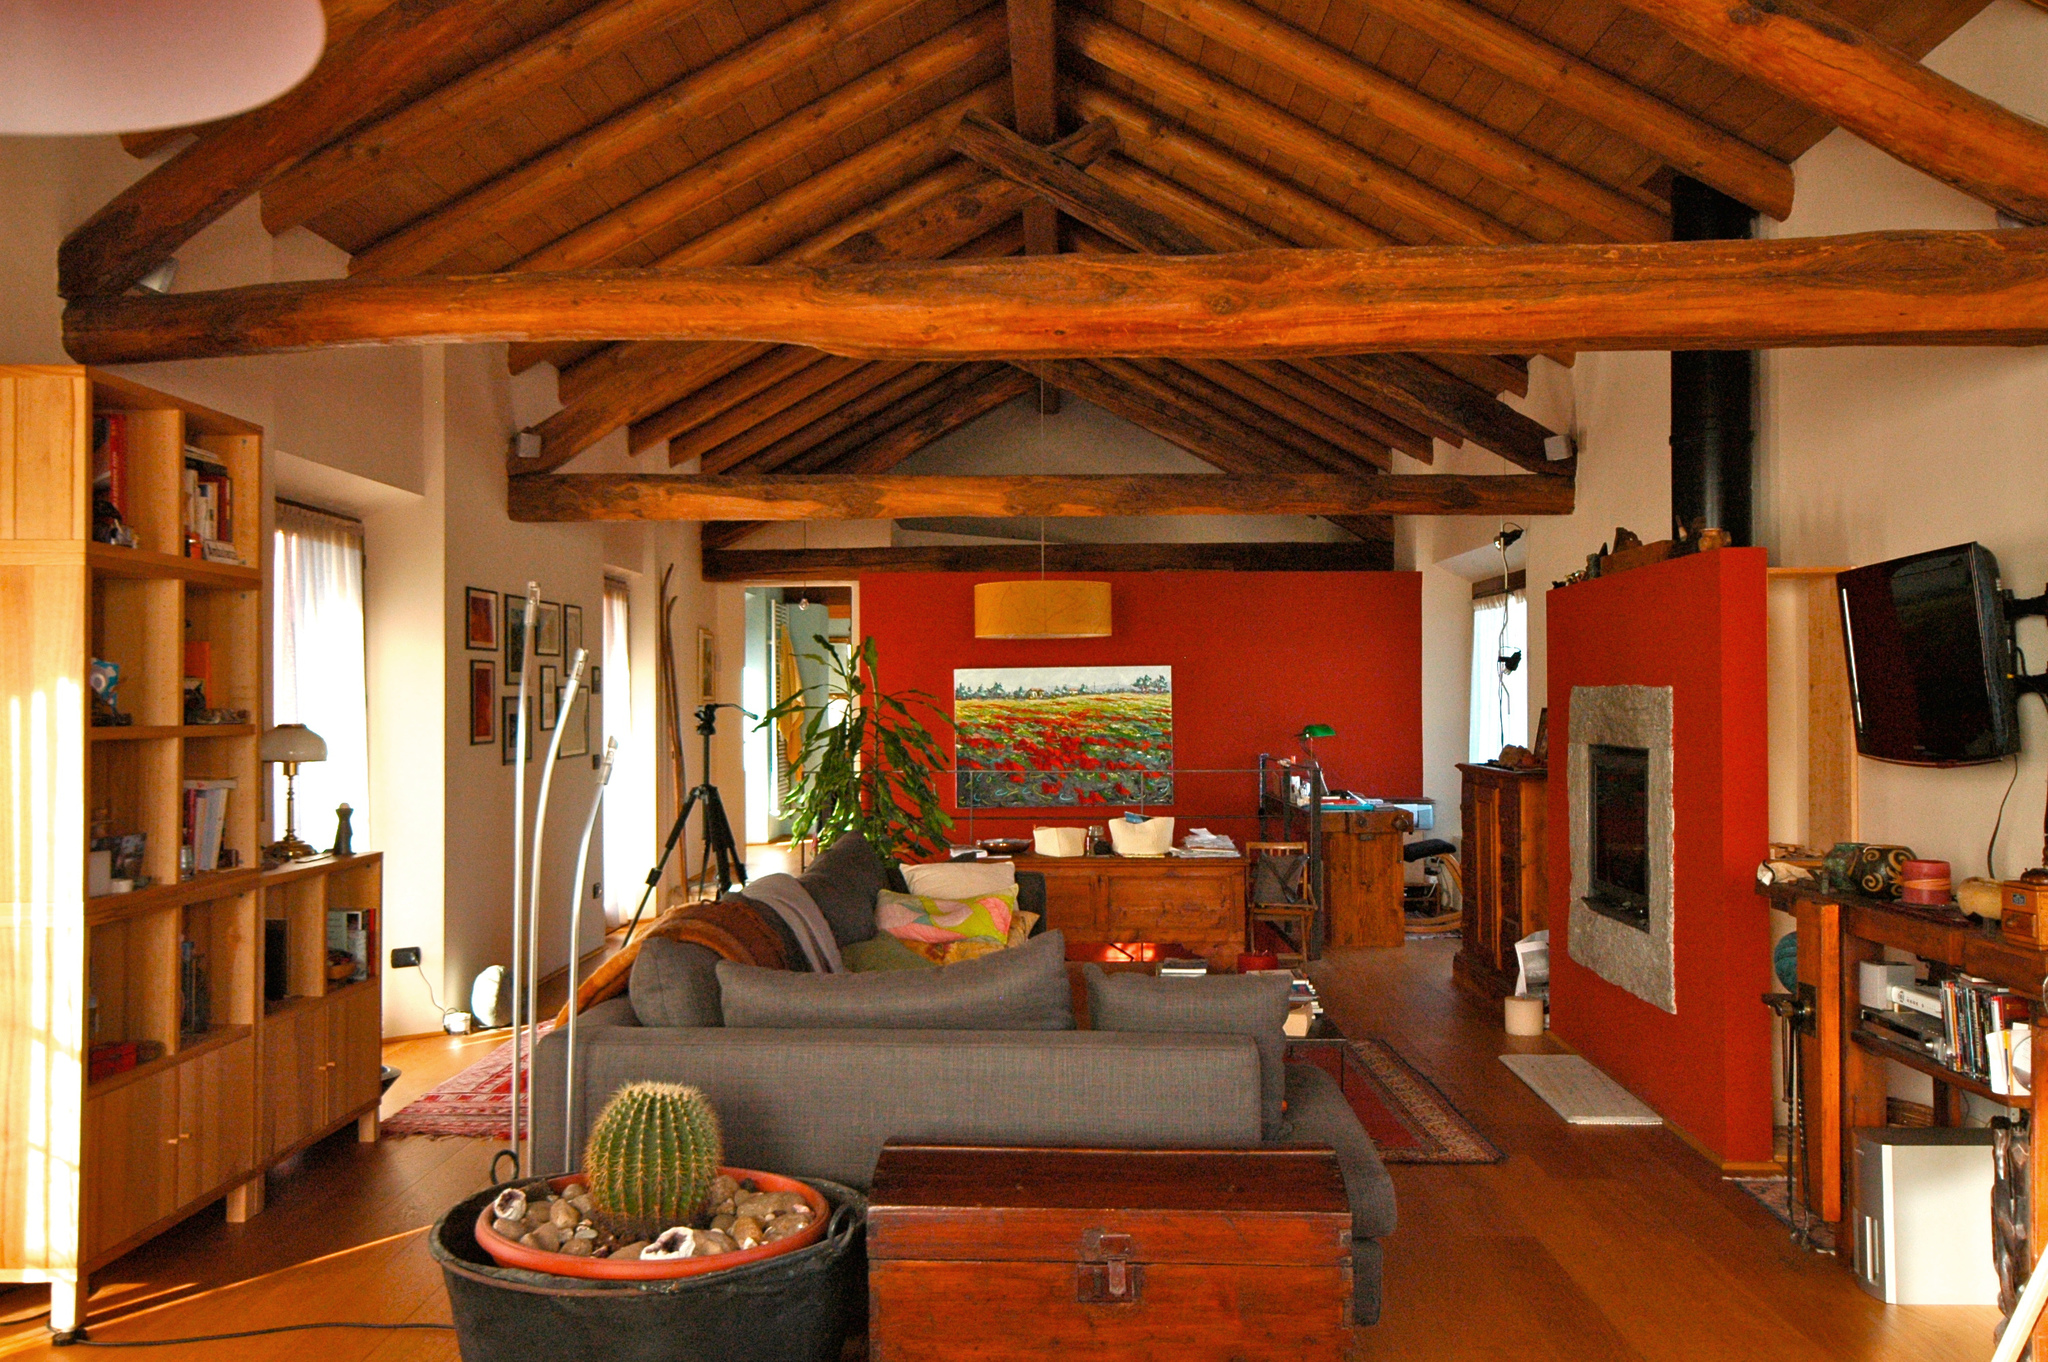 Independent rustic home with personality & modern conveniences near Stresa, Lake Maggiore